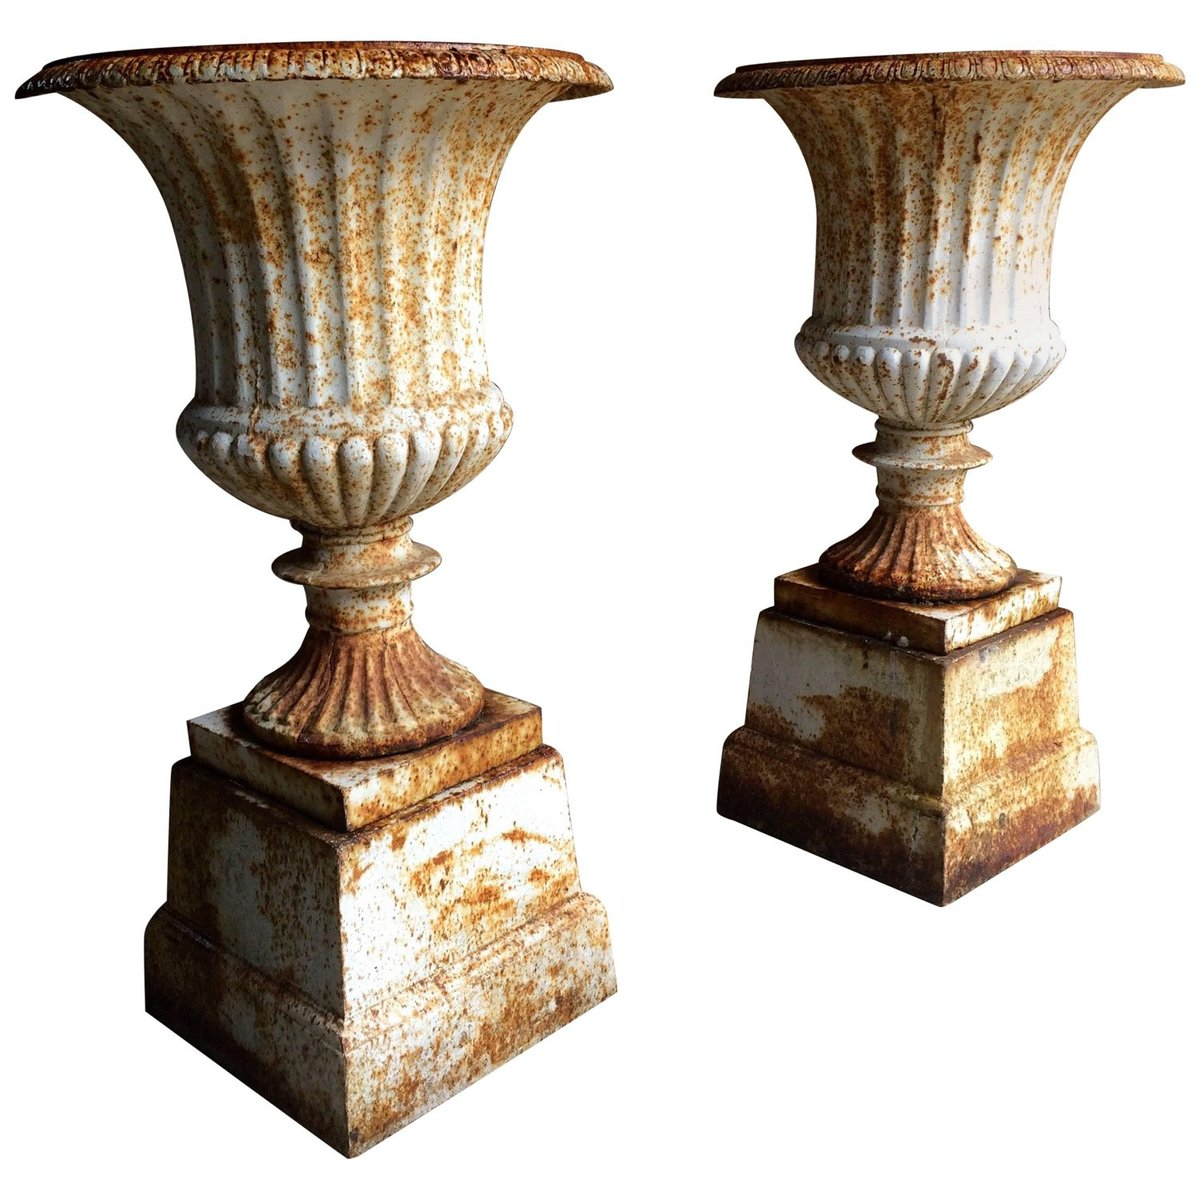 Cast Iron Garden Urns 1900s Set of 2 for sale at Pamono